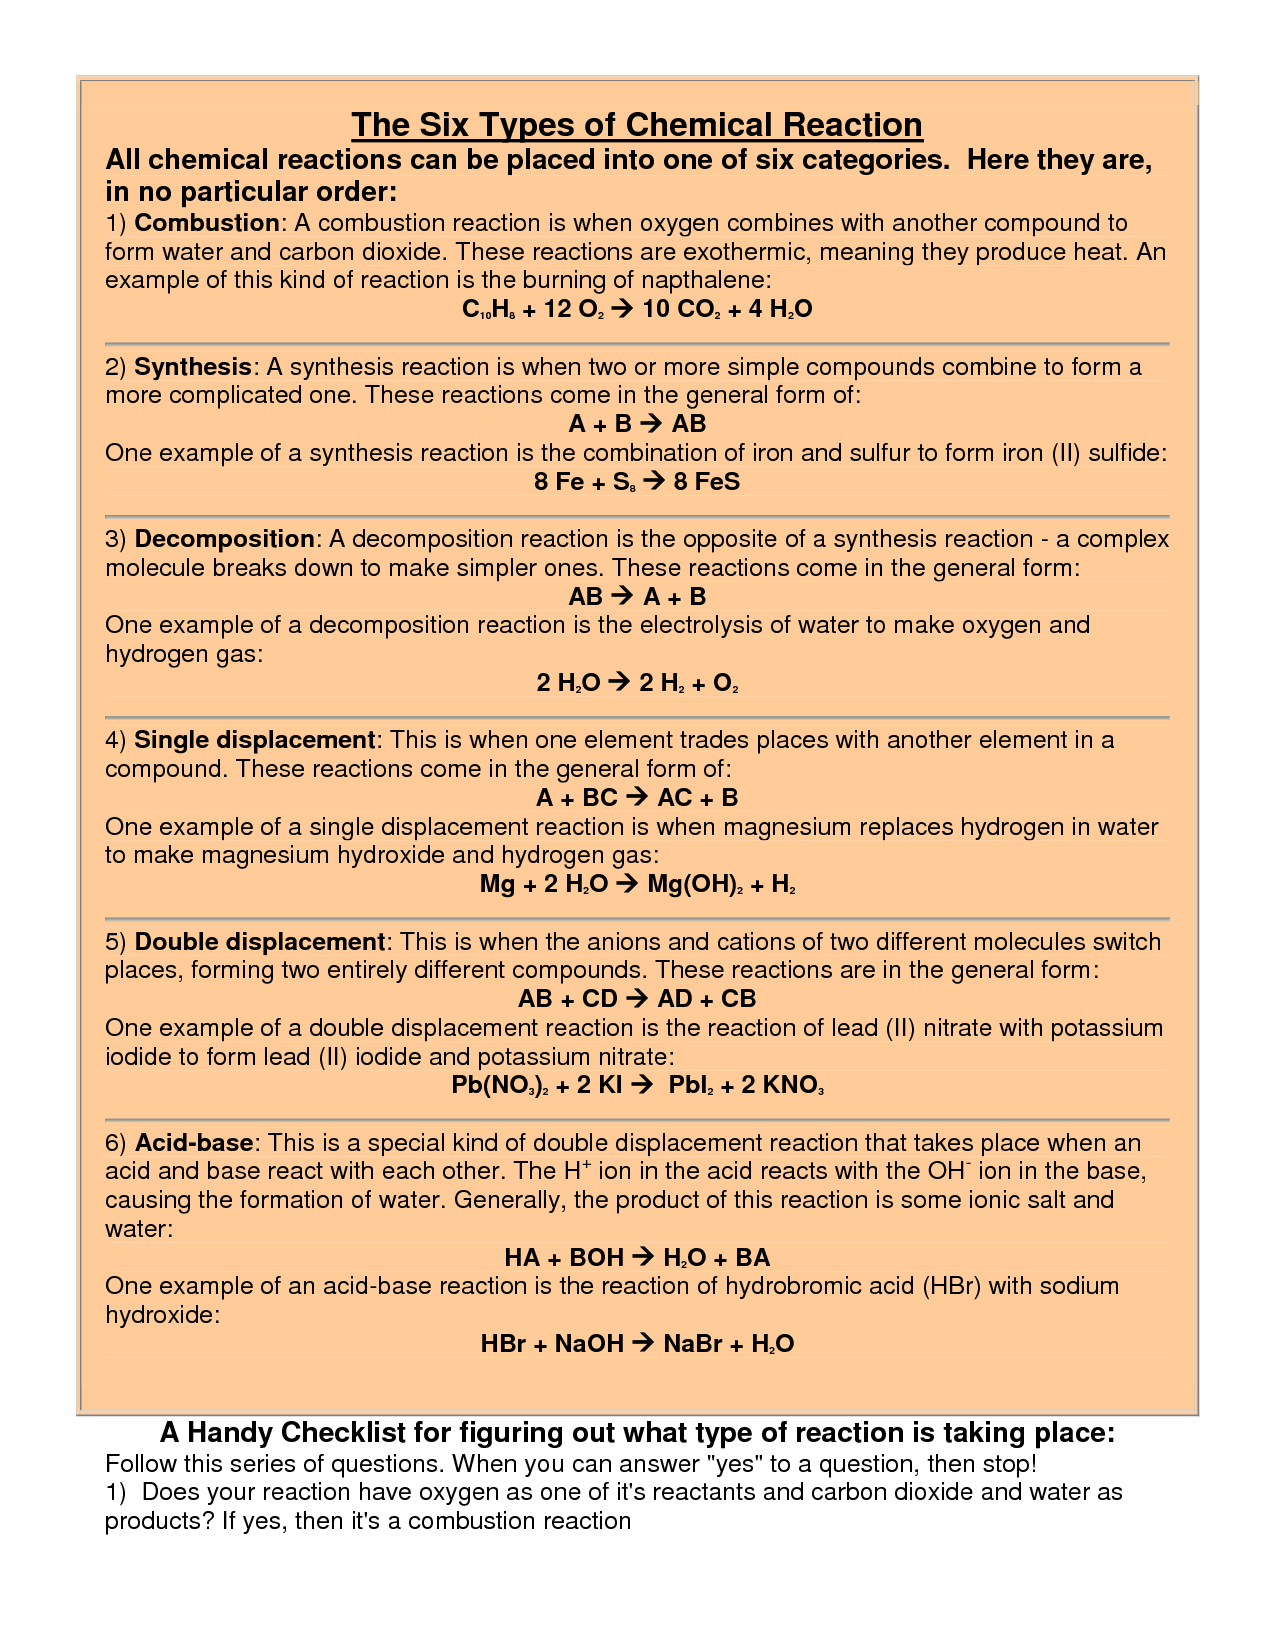 Tes, Charts And Finals On Pinterest 25eed3c607925156634d365beb5d8959  252905335294759648. Six Types Of Chemical Reaction Worksheet